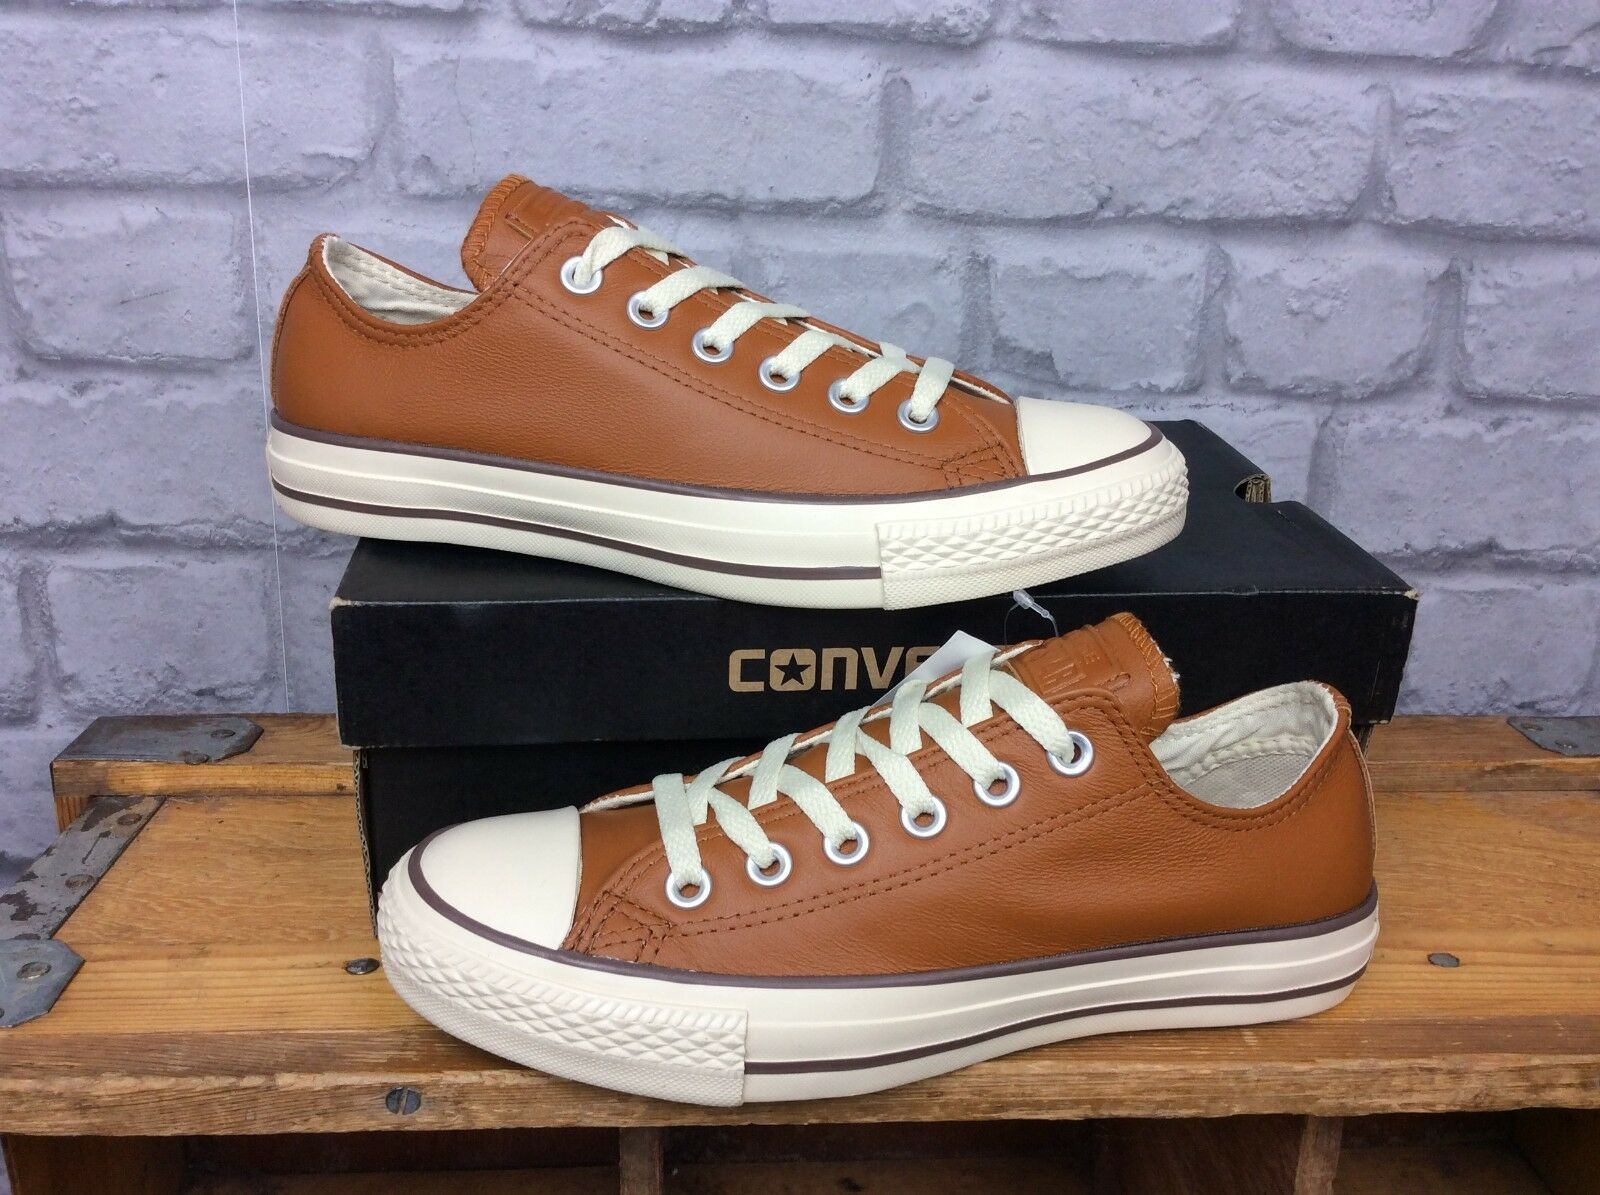 Converse Donna EU 37.5 ALL STAR OX OX OX III   Da Ginnastica in Pelle Marrone Chiaro 599149